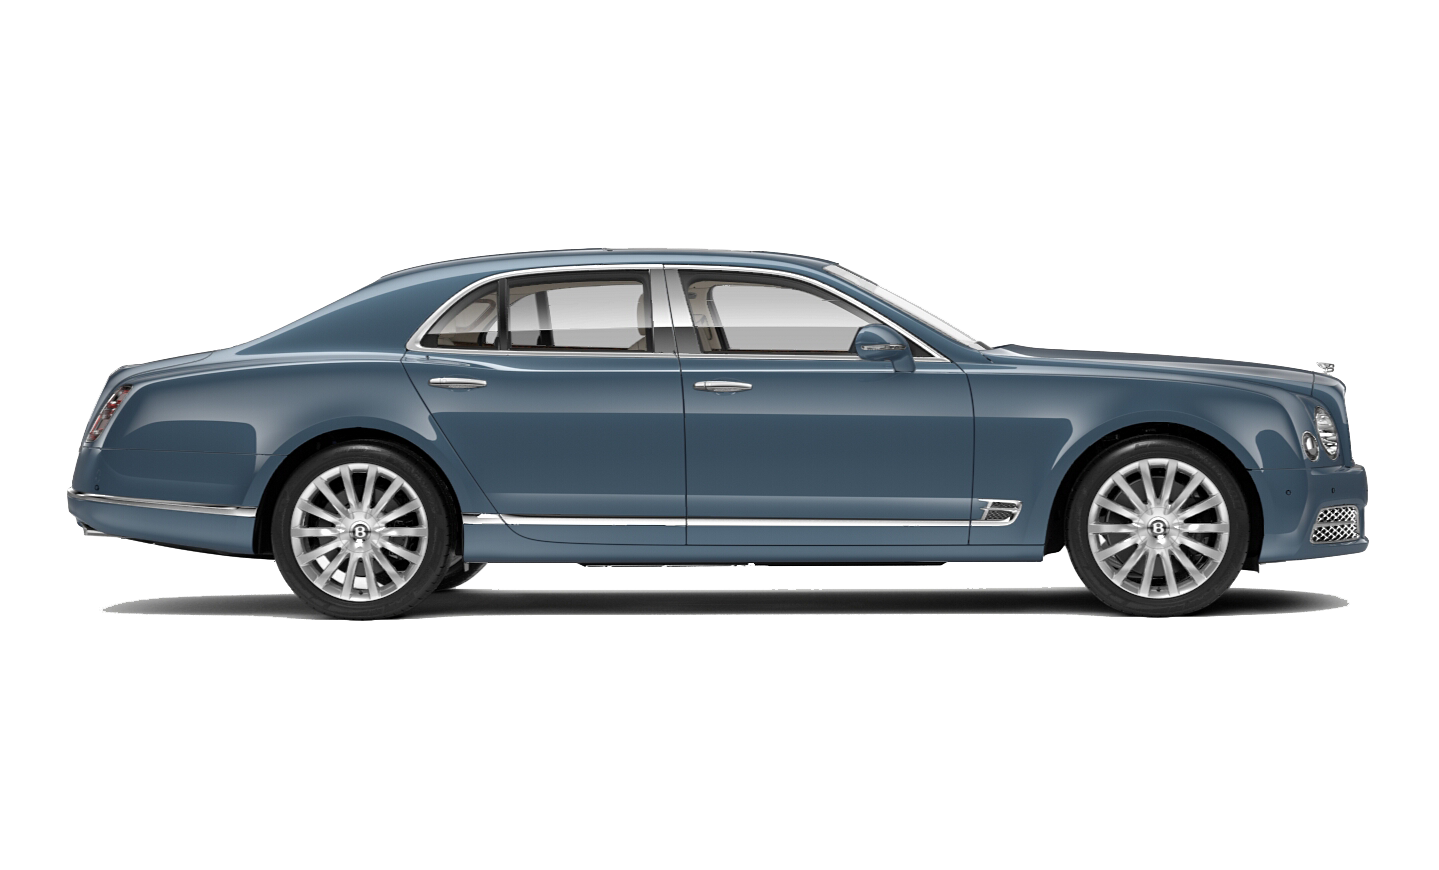 Side of car clipart royalty free stock Bentley Mulsanne side view PNG Clipart - Download free images in PNG royalty free stock